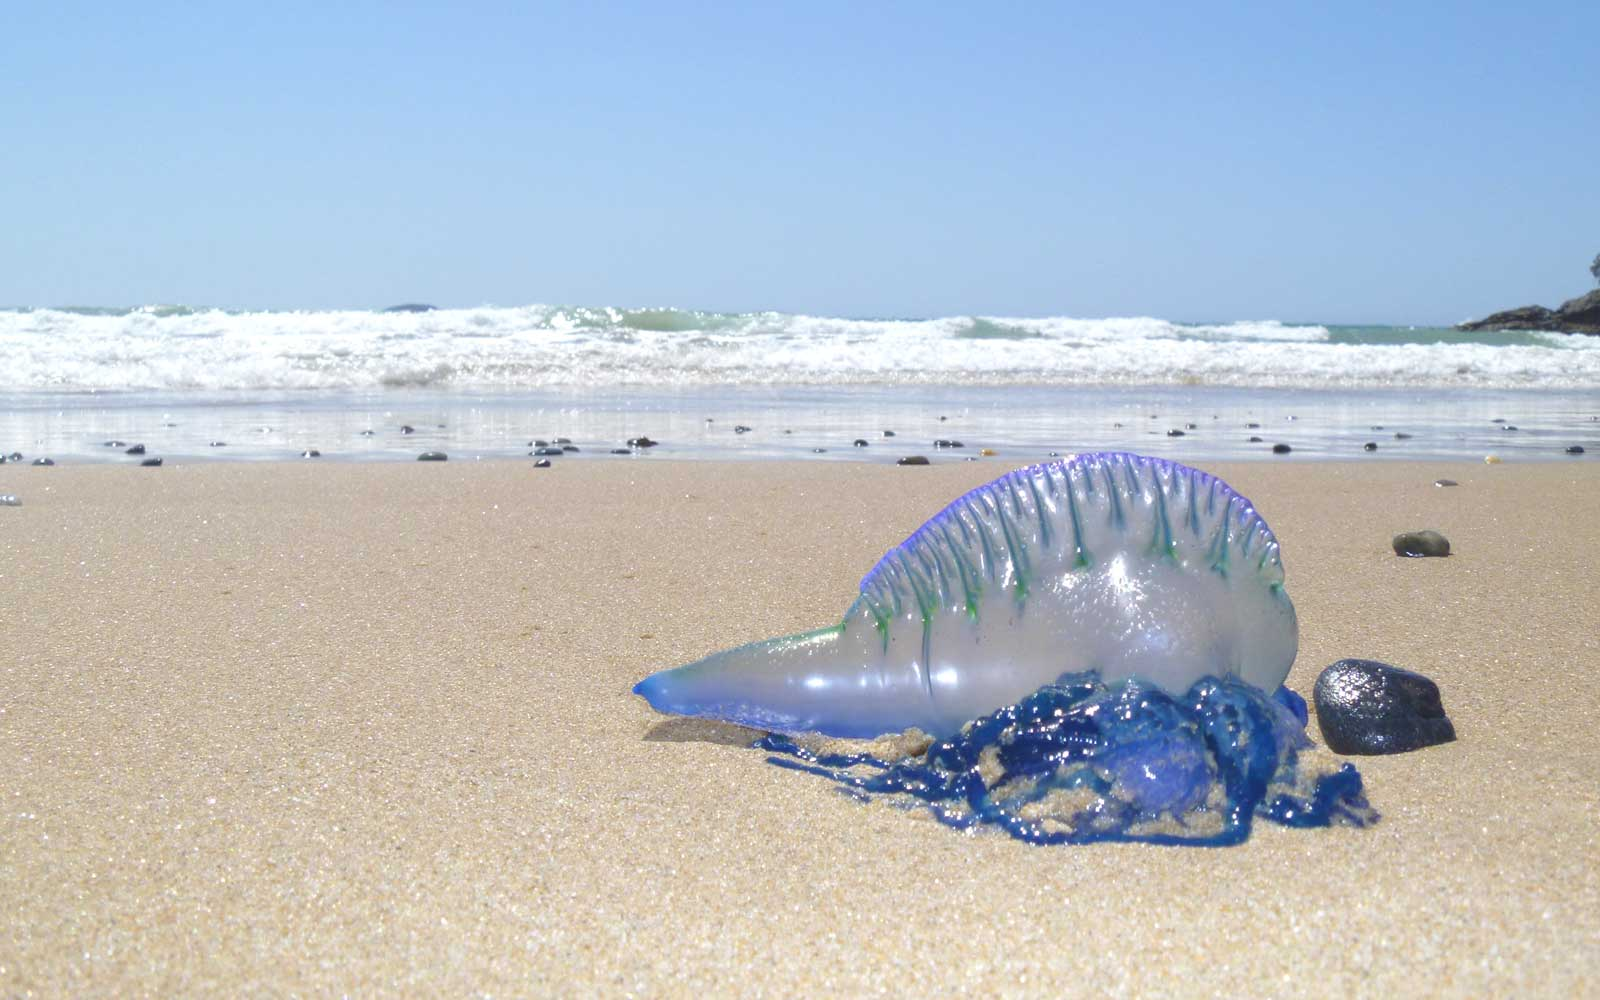 Over 3,500 People Were Stung in a Jellyfish 'Invasion' Over the Weekend